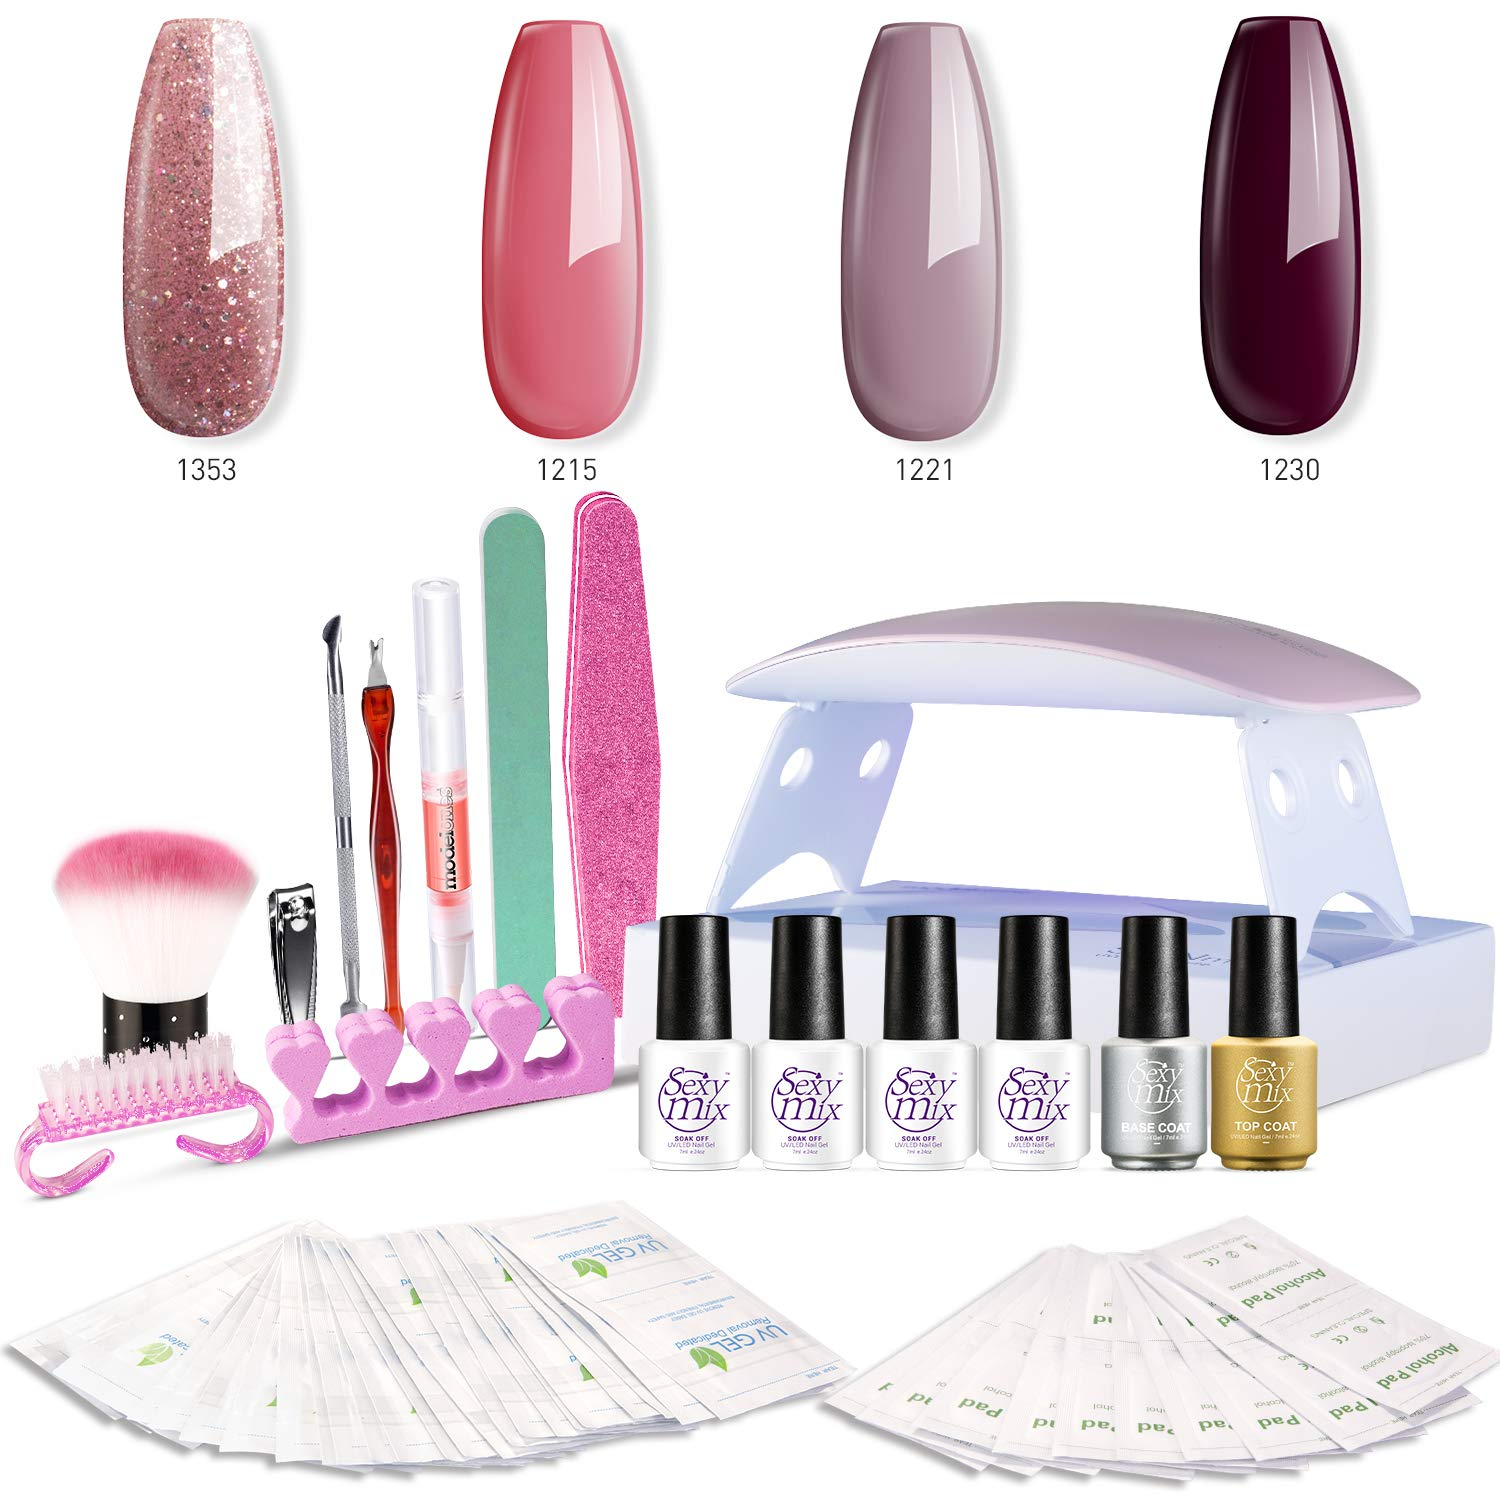 SEXY MIX Gel Nail Polish Kit with UV LED Light, Home Gel Nail Polish Kit Manicure Tools 4 Colors Gel Nail Polish Base and Top Coat, Portable Kit for Travel by SEXY MIX